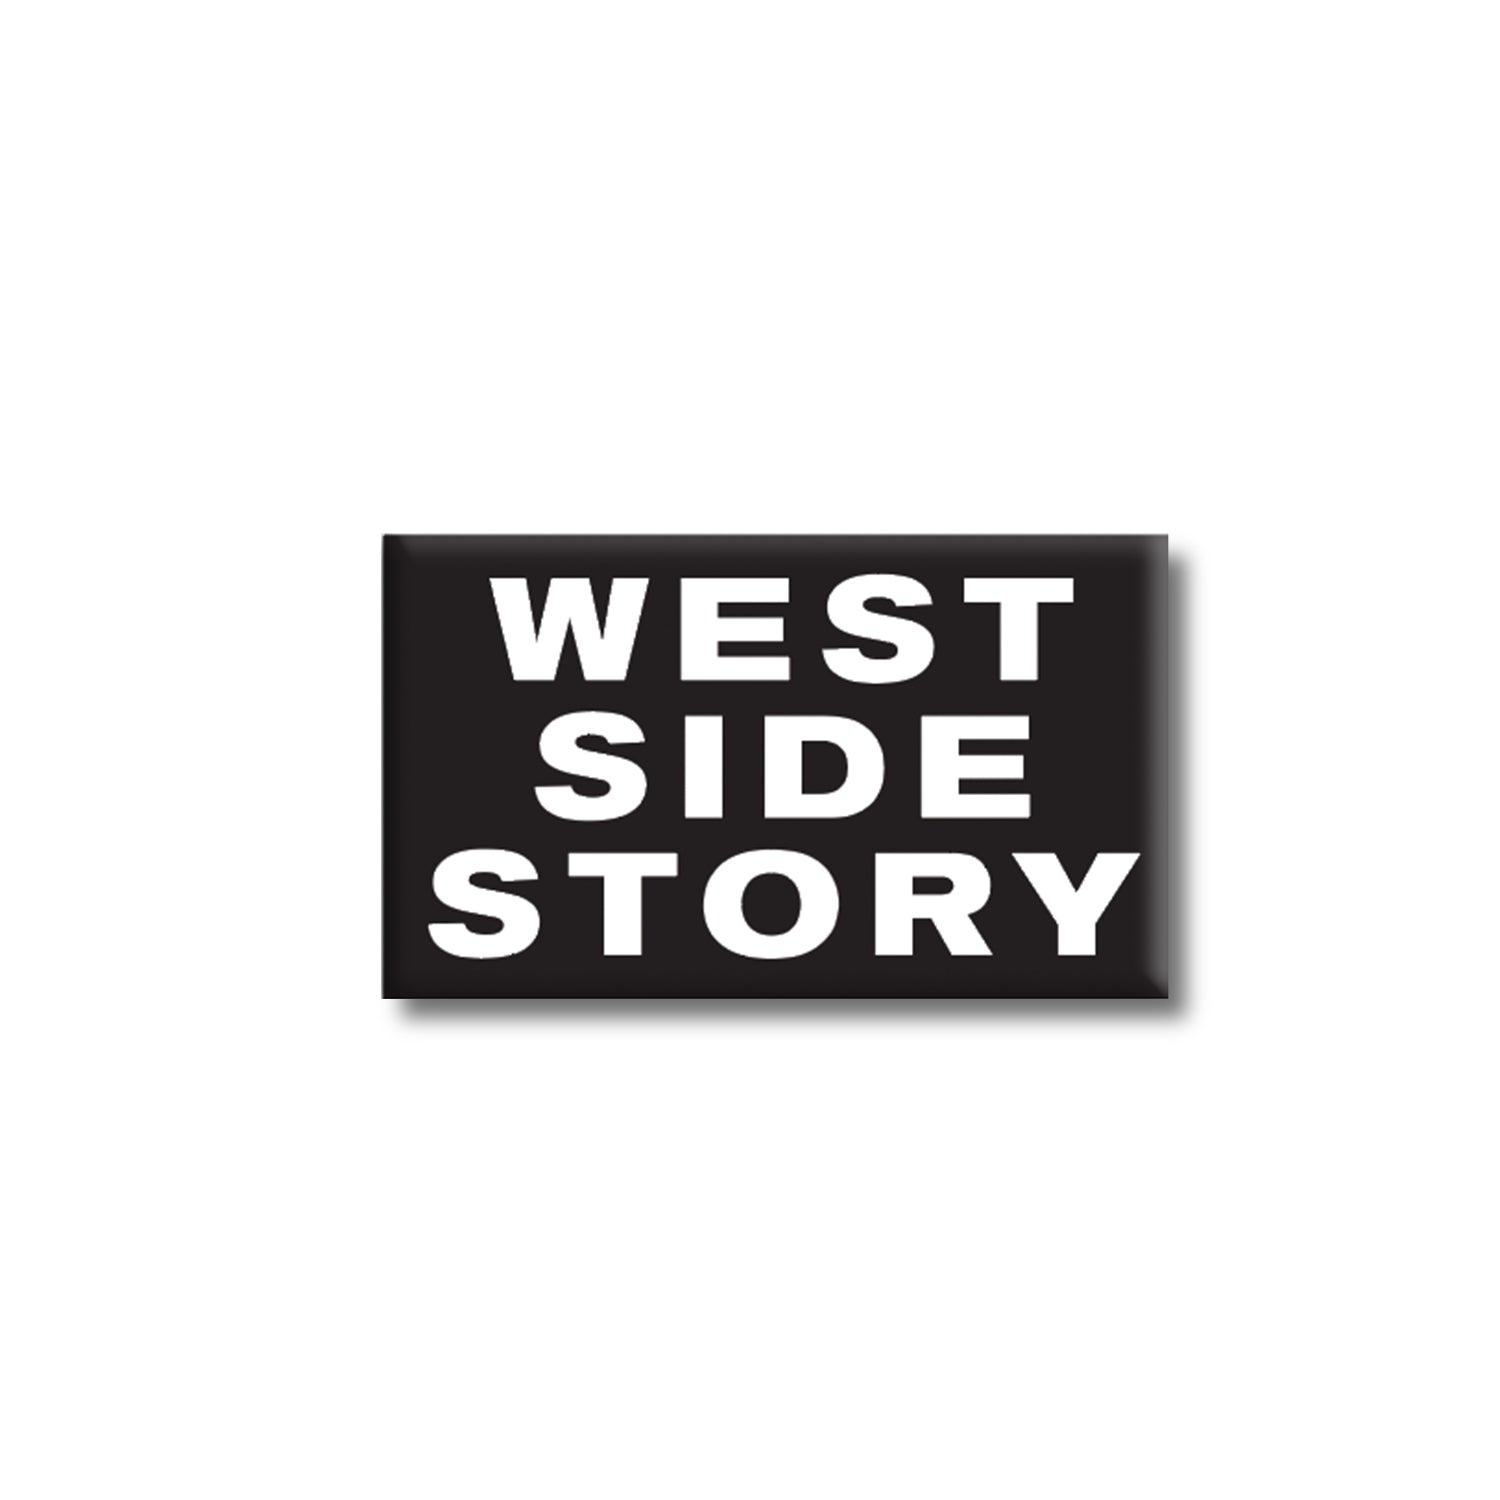 WEST SIDE STORY Lapel Pin Image